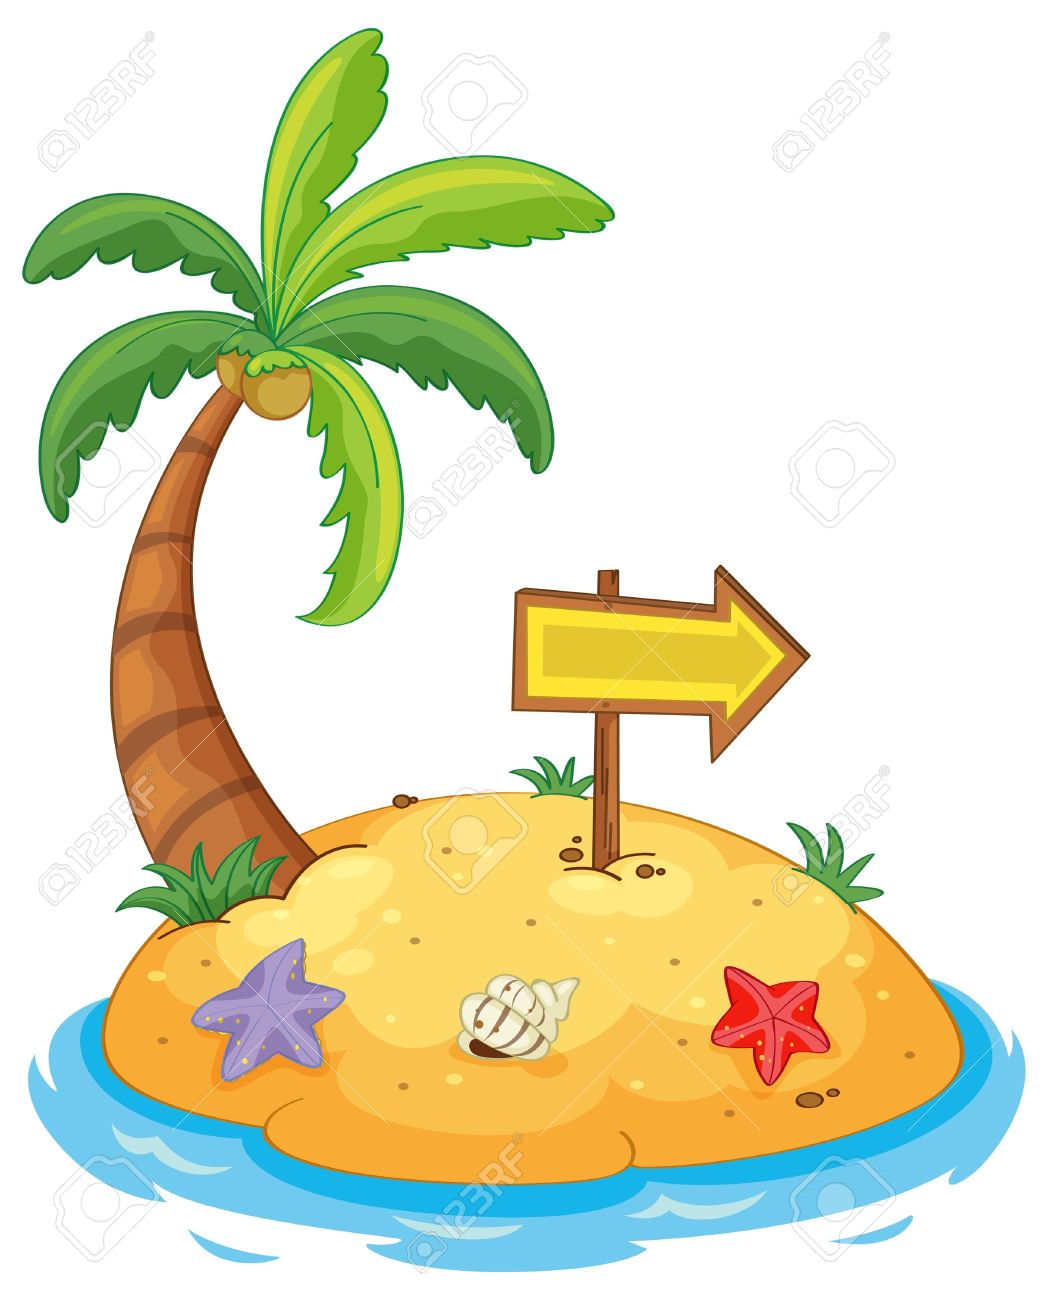 Pirate island clipart clipart transparent stock Cartoon Island Pictures | Free download best Cartoon Island ... clipart transparent stock